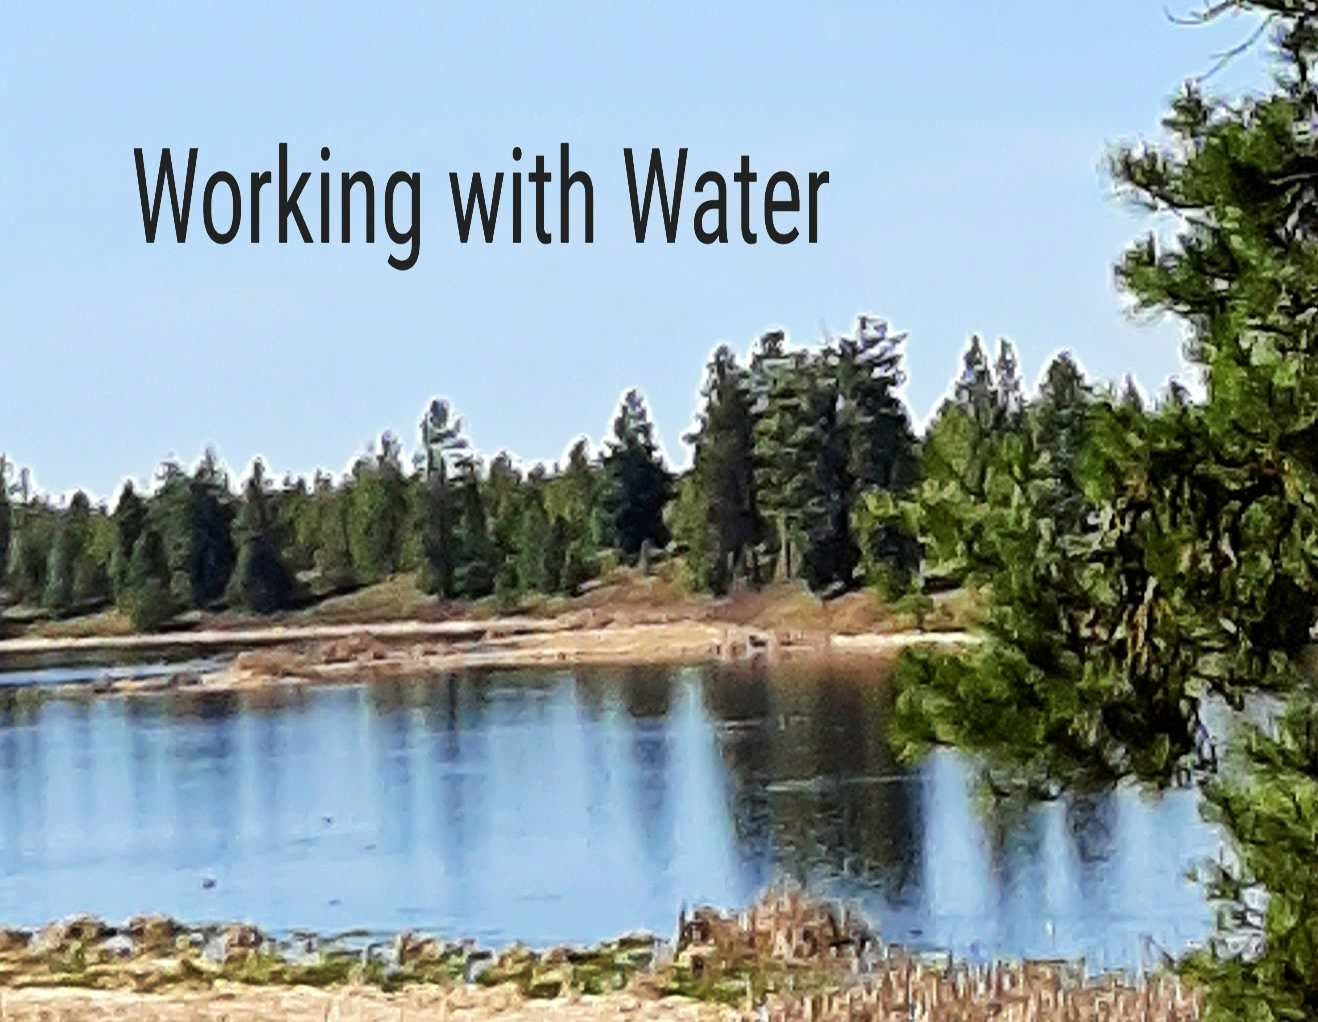 Working with Water